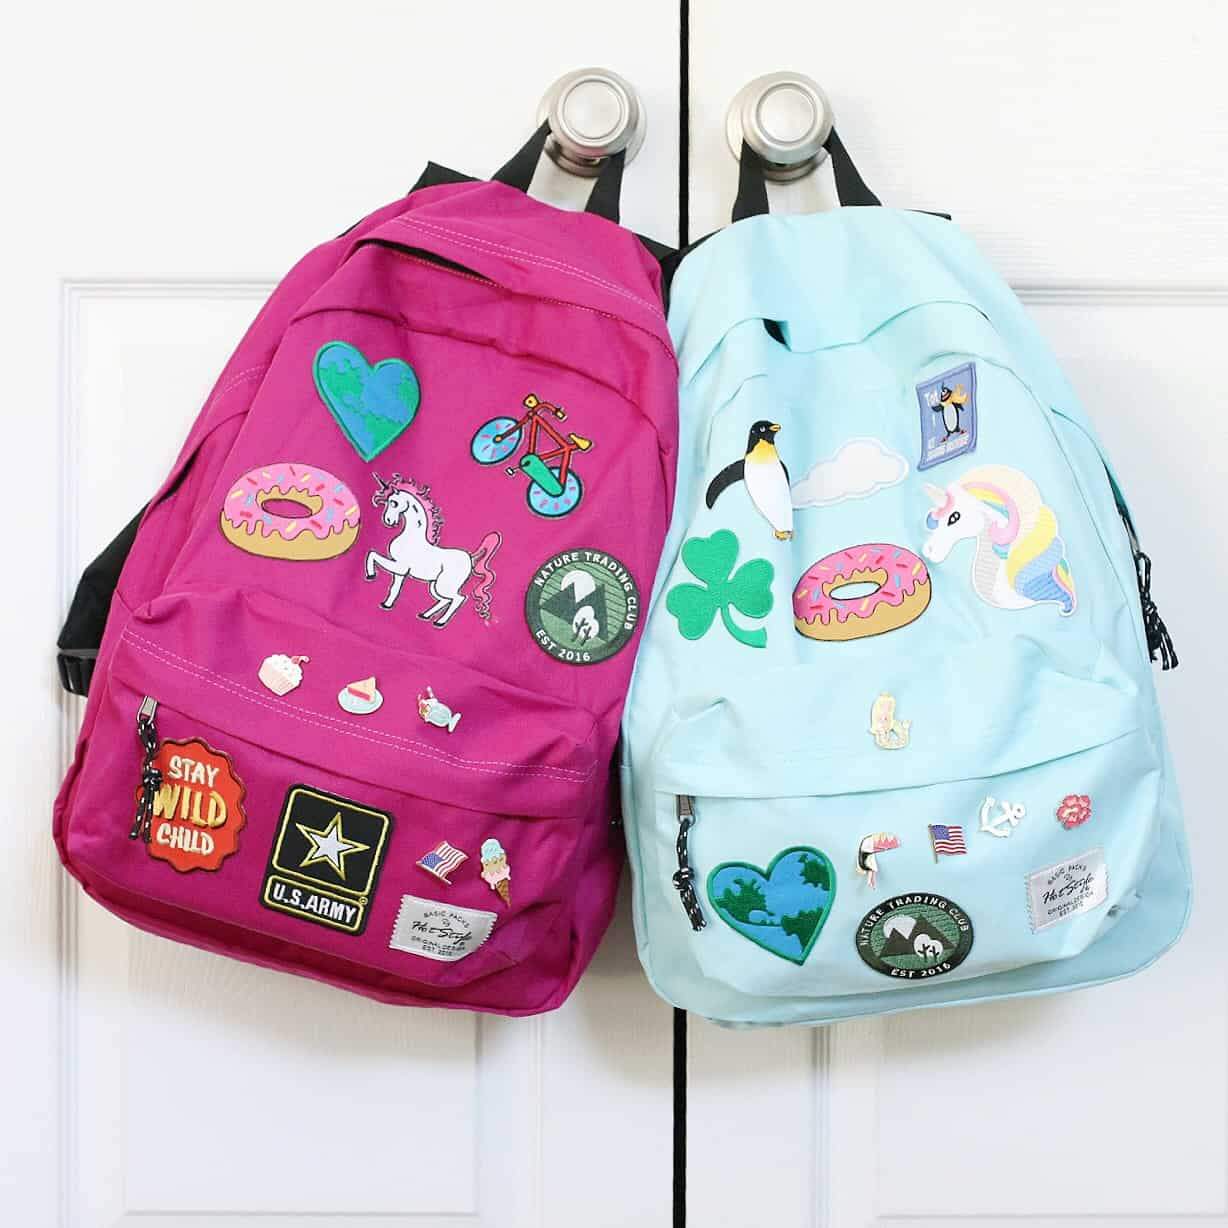 DIY Backpacks for School a8e41df45cf92